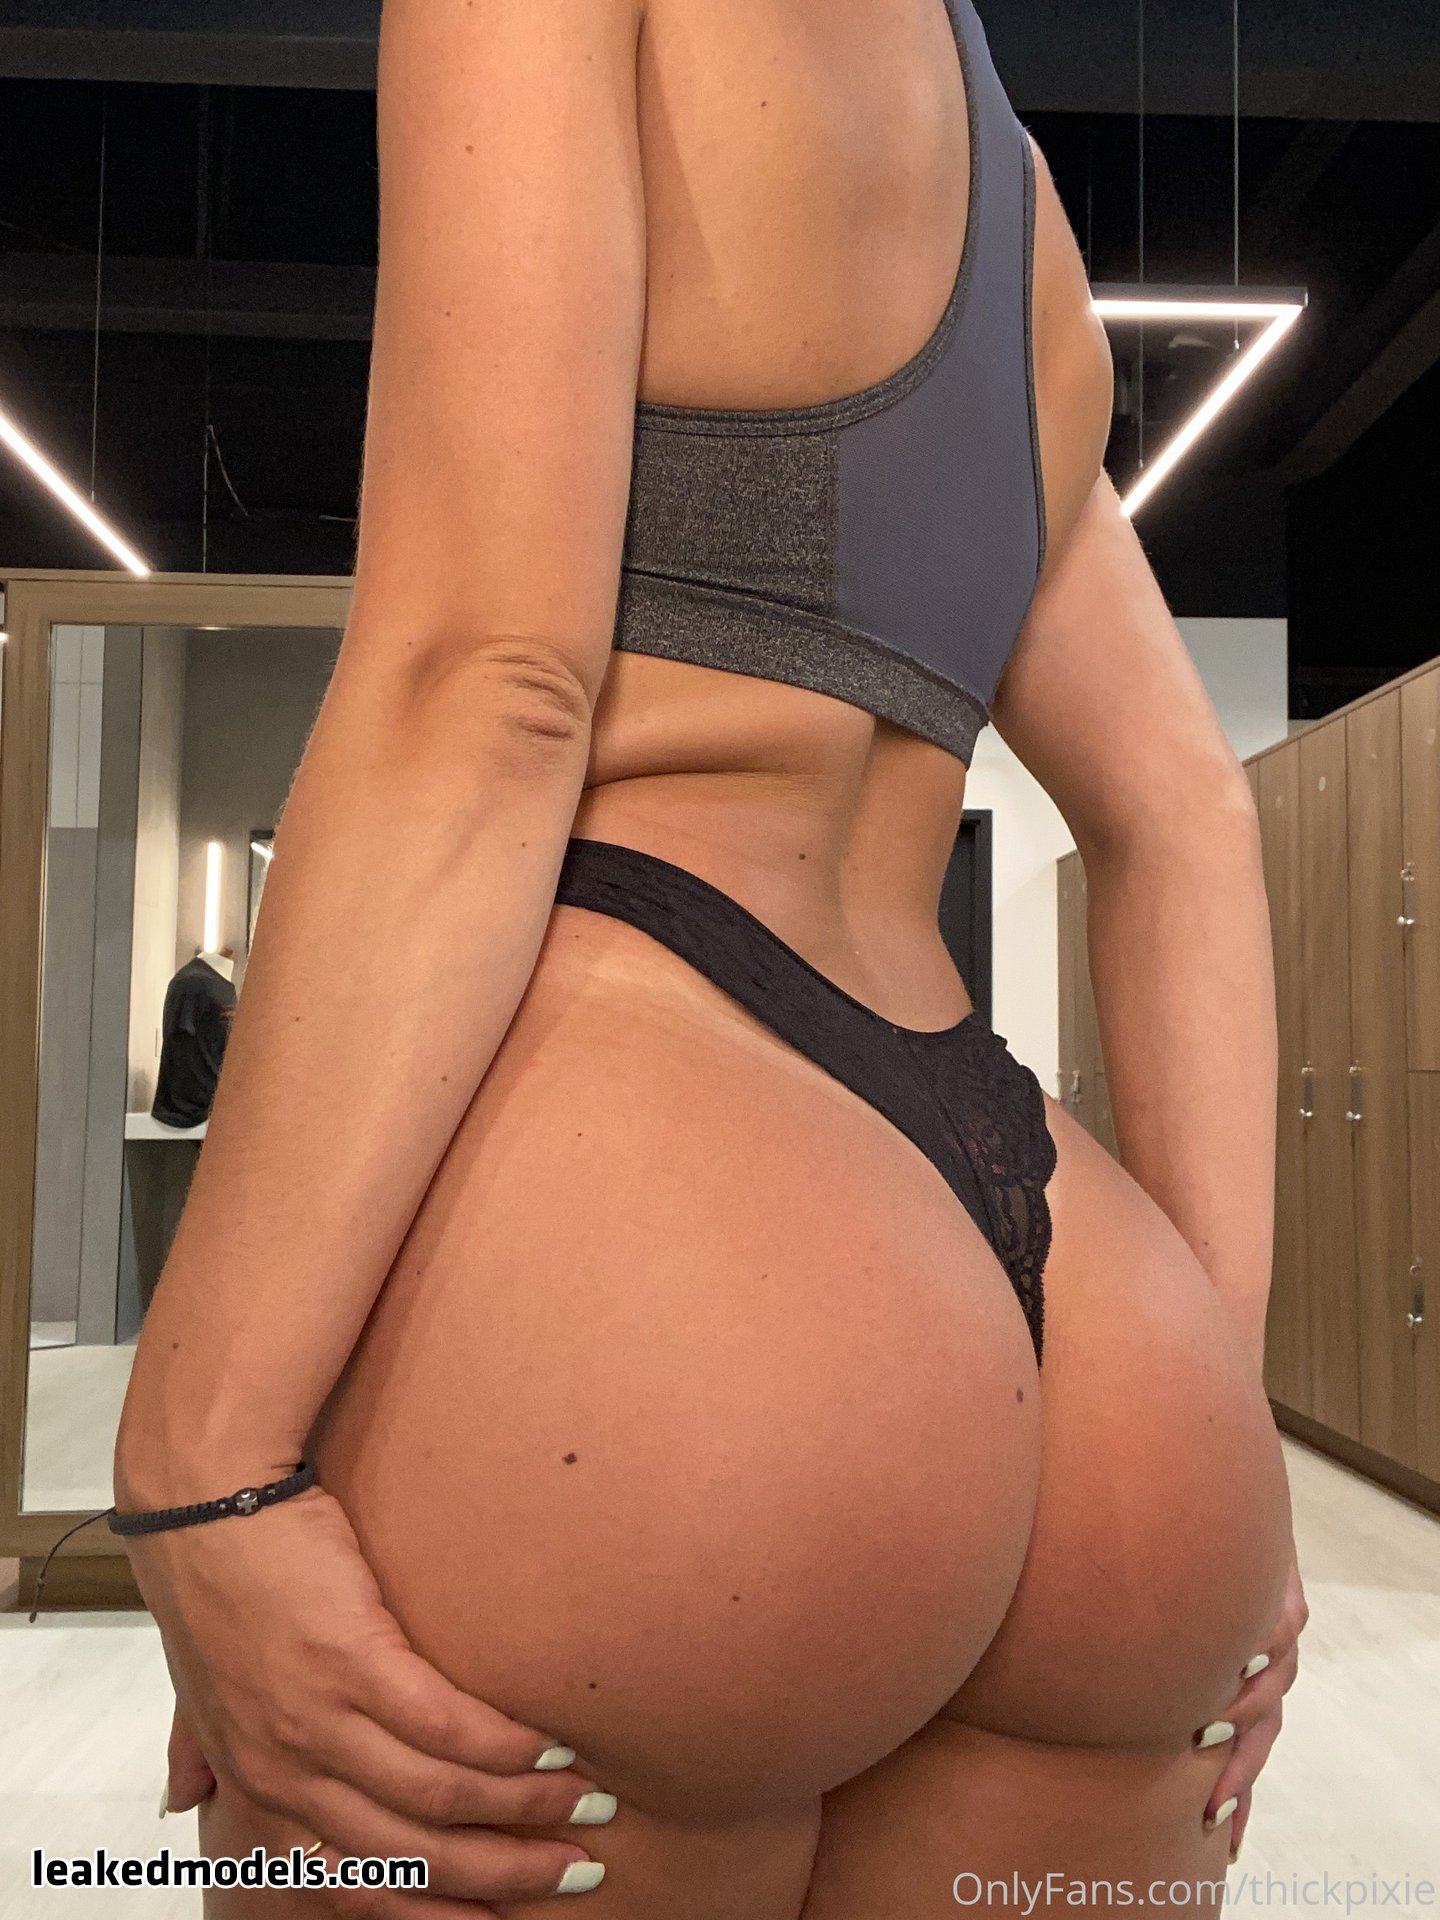 Kiera Young – kierayoung OnlyFans Nude Leaks (28 Photos)